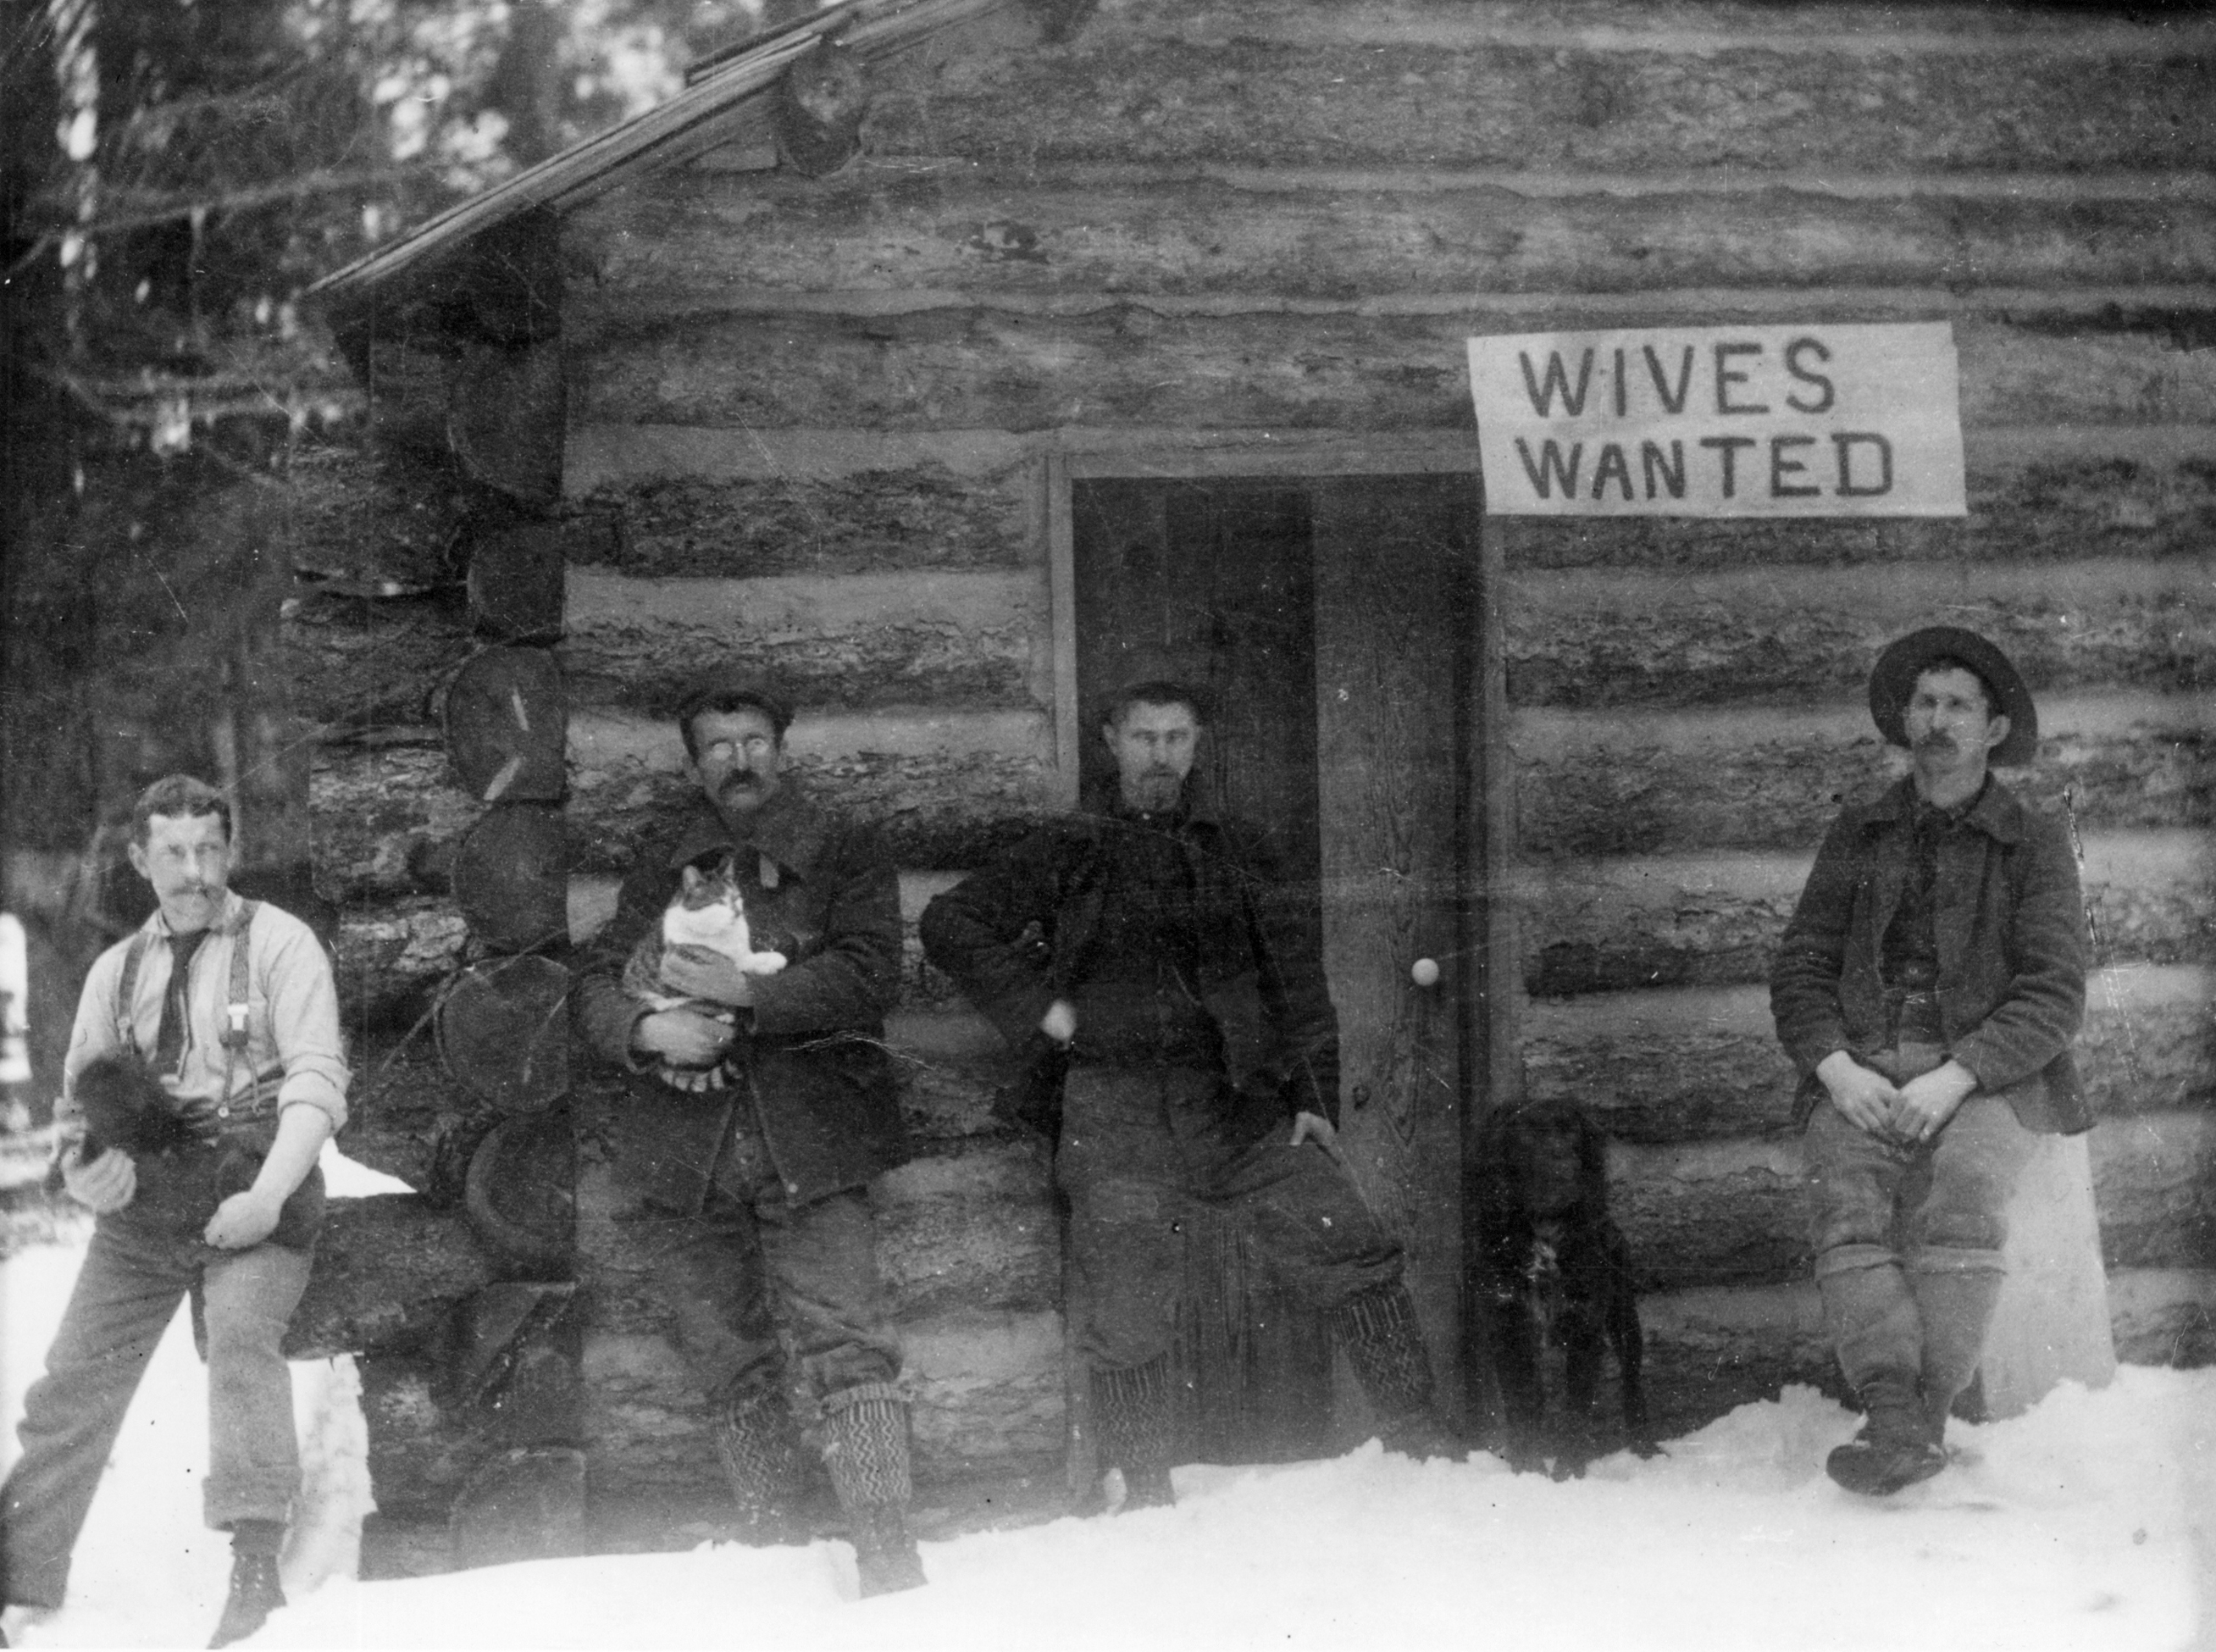 A group of Montana men advertising for wives, ca. 1901. Photo courtesy of National Park Service, Glacier National Park Archives